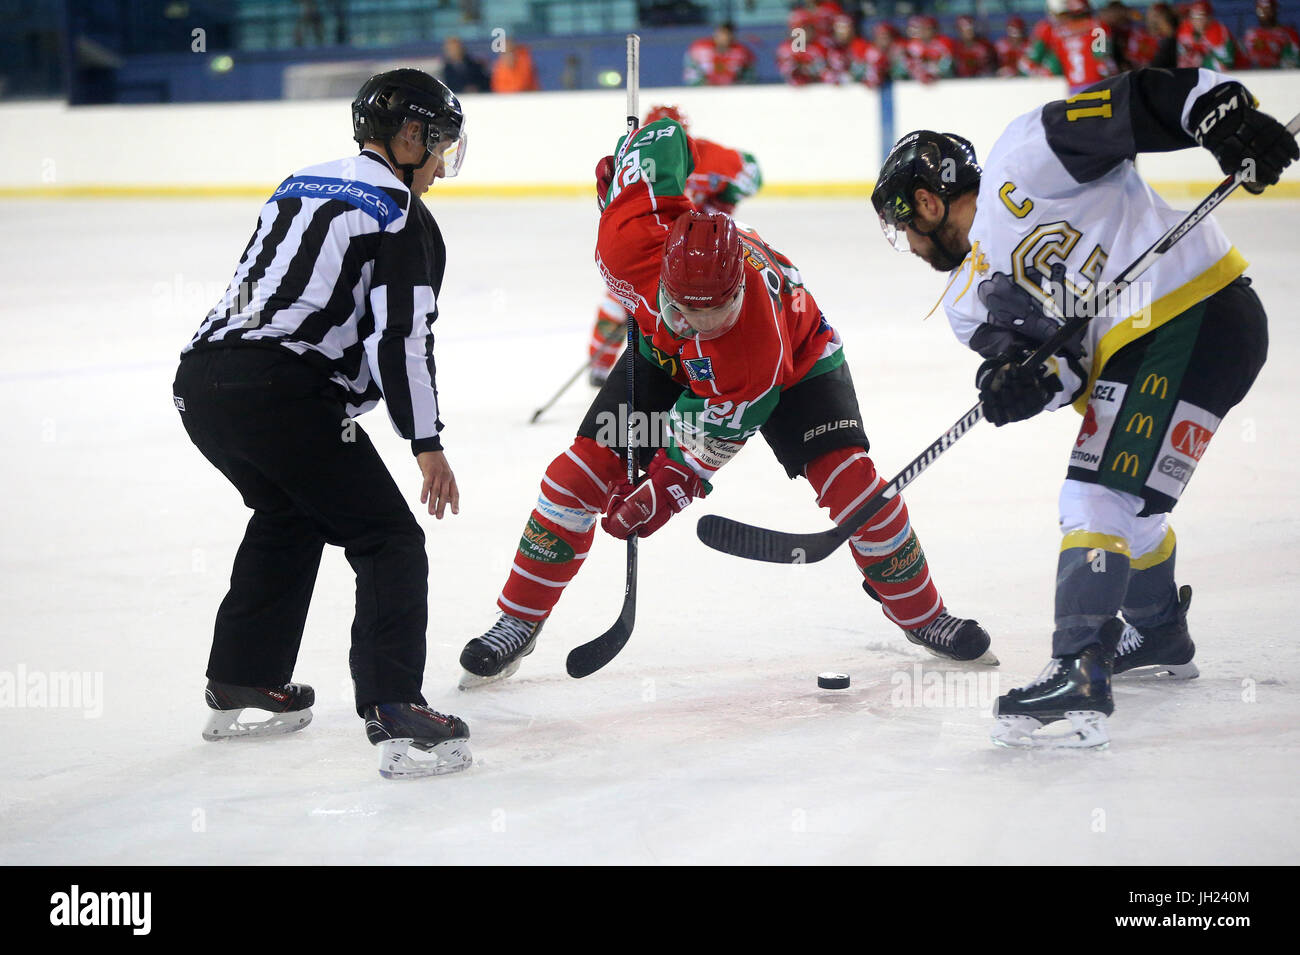 Ice Hockey match. Face off.  Players in action. France. - Stock Image